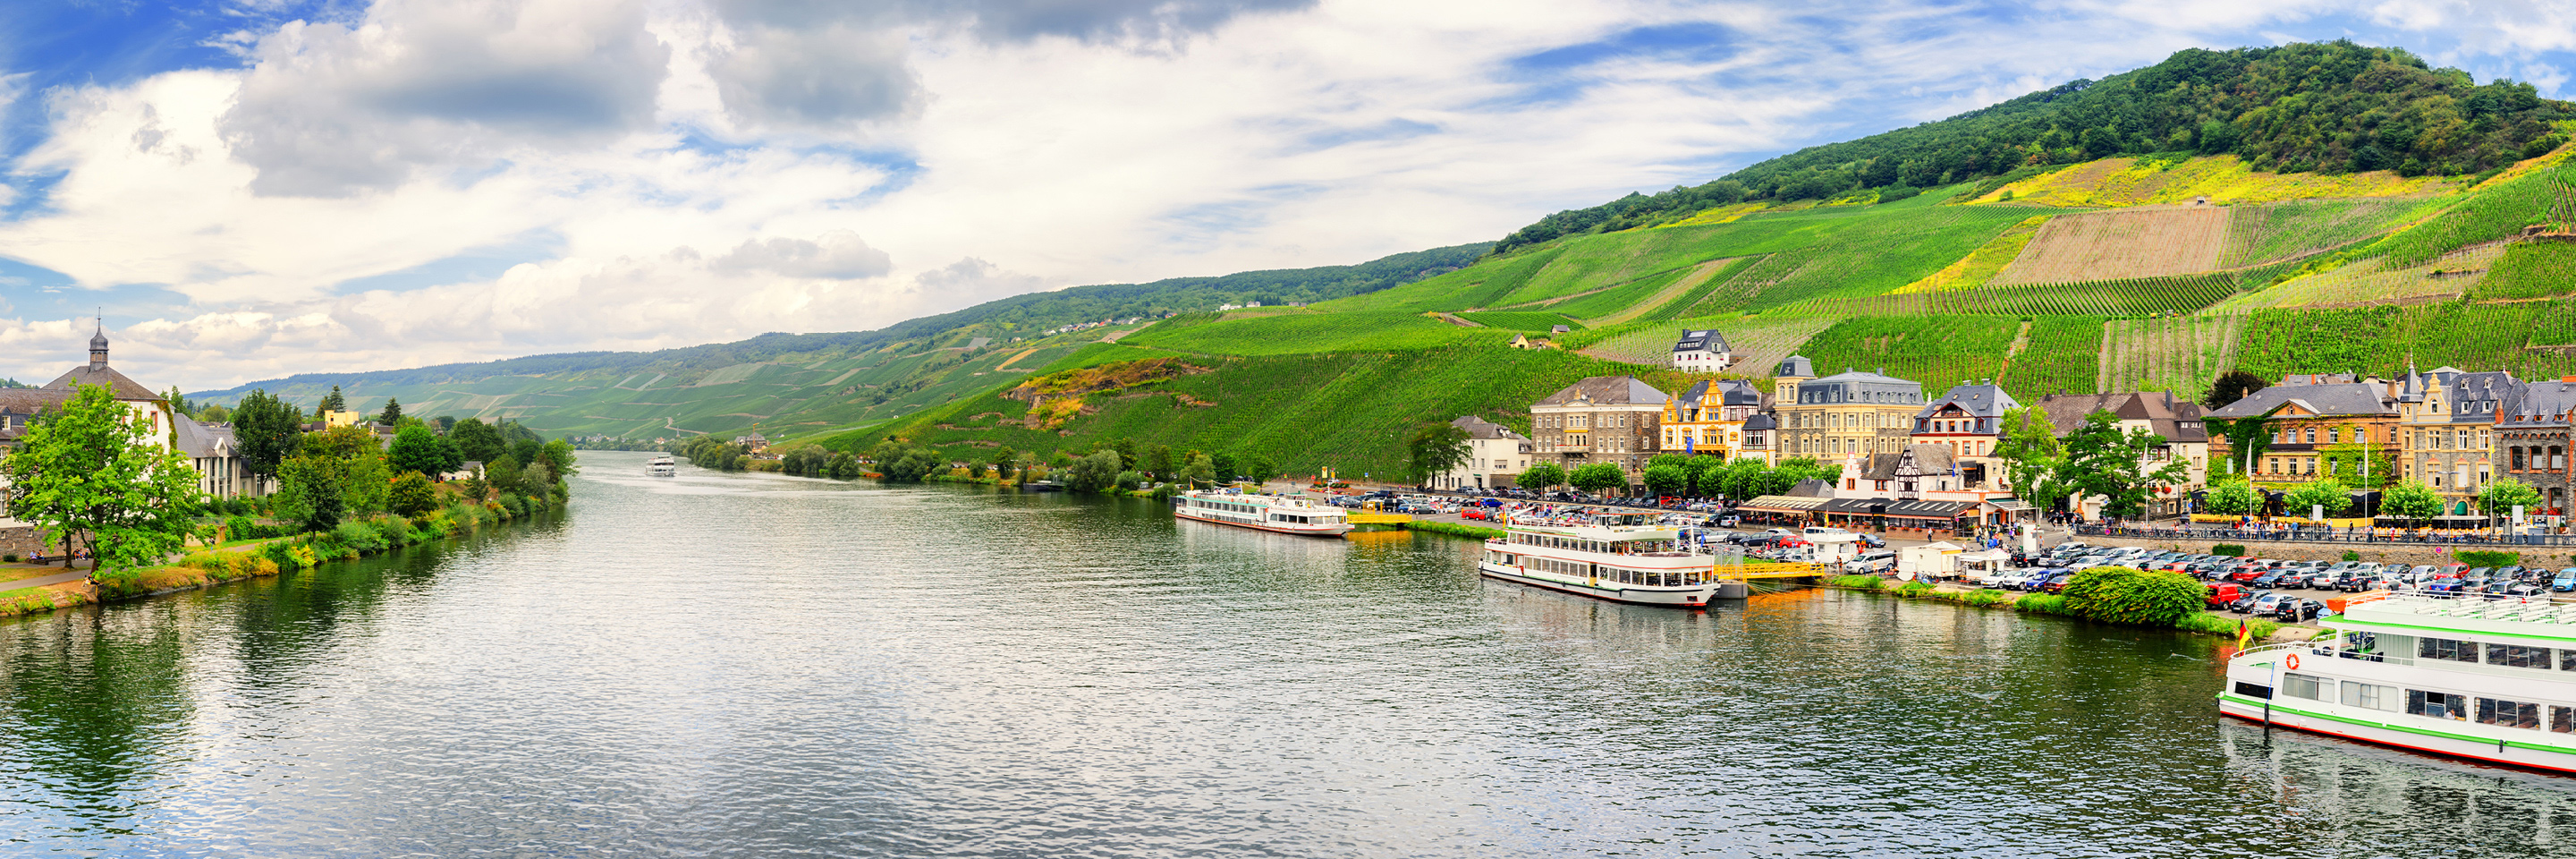 Once upon Three Rivers: the Rhine, Moselle & Main